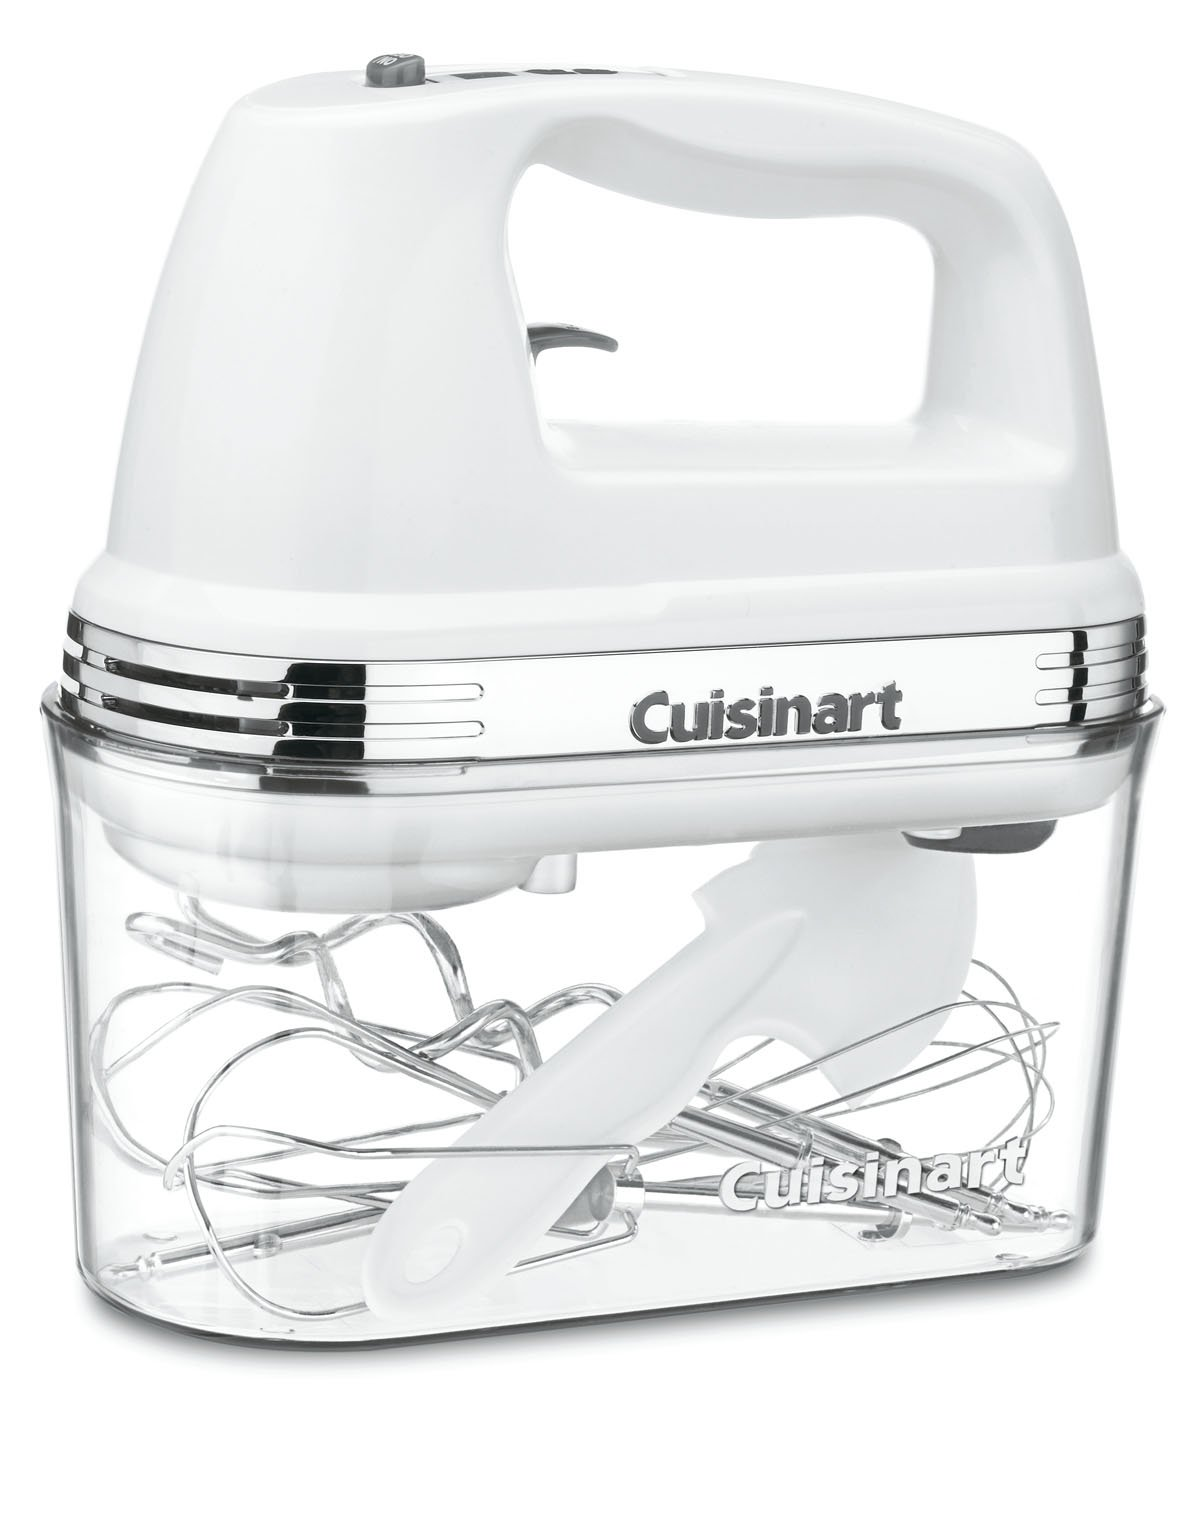 Cuisinart HM-90S Power Advantage Plus 9-Speed Handheld Mixer with Storage Case, White by Cuisinart